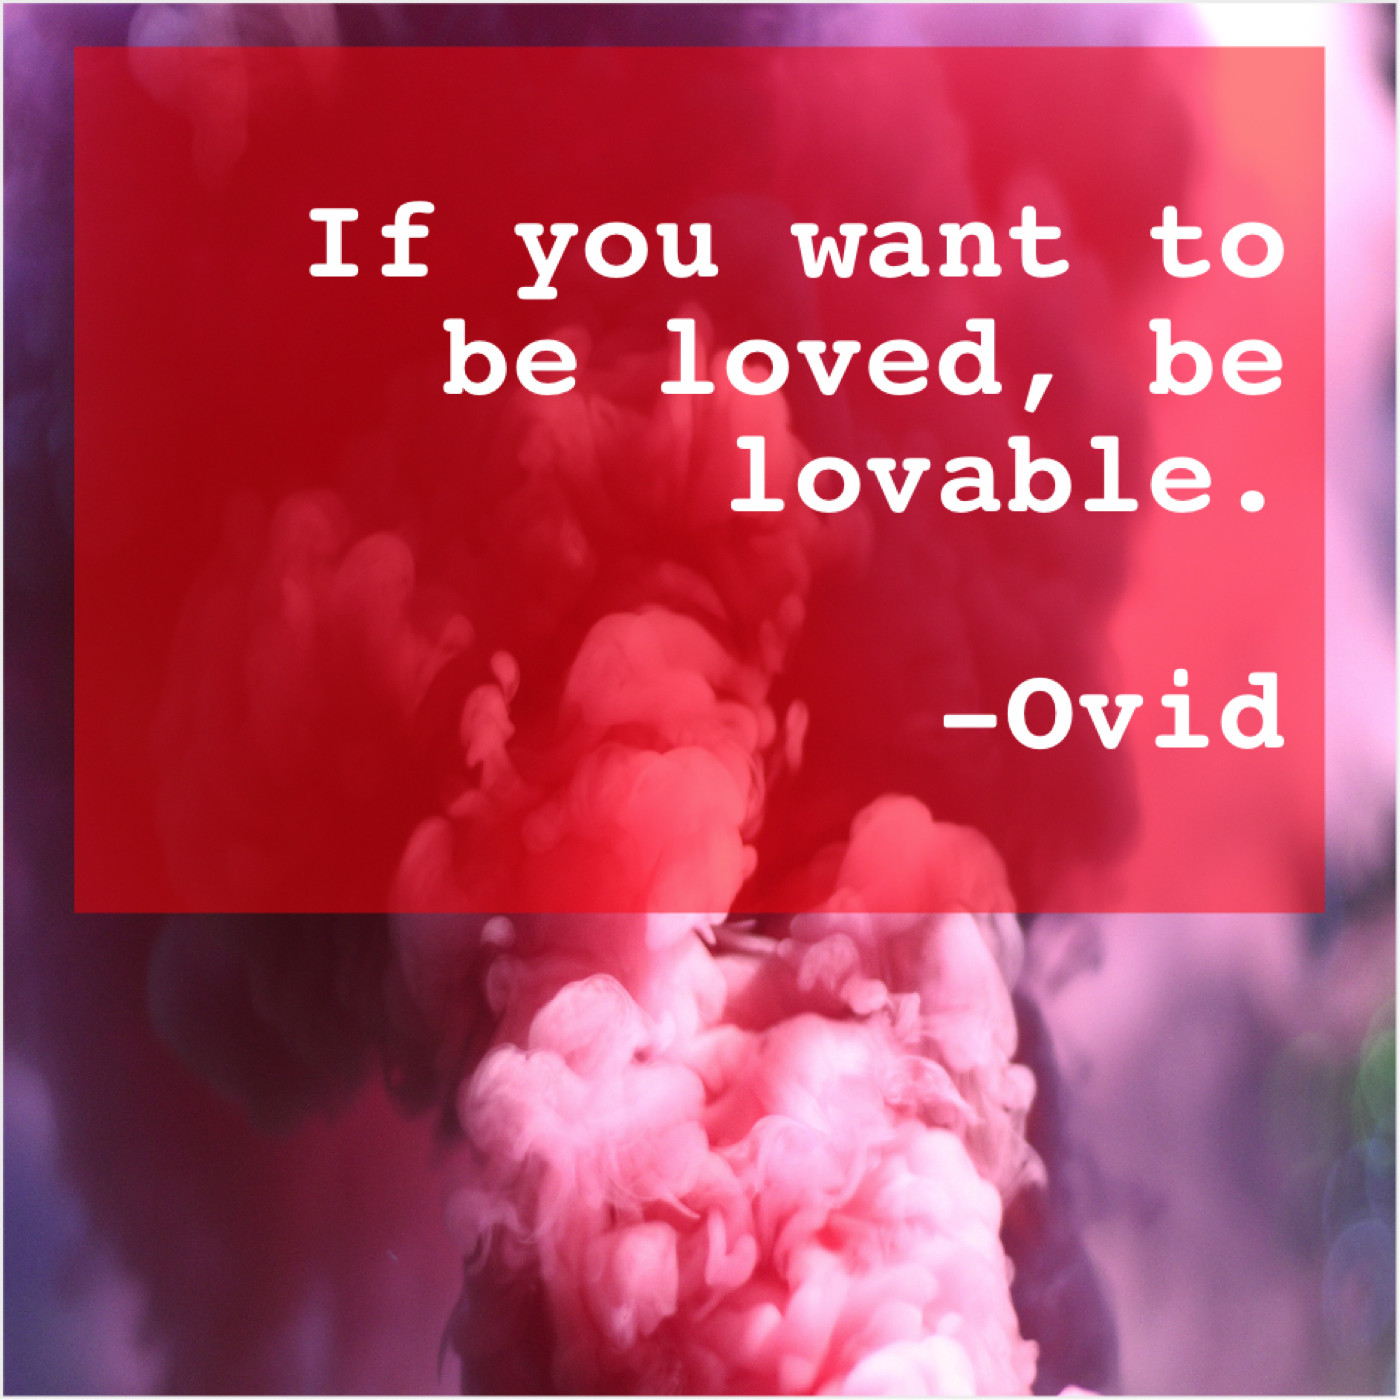 Lovable want be loved to if you be Learn to